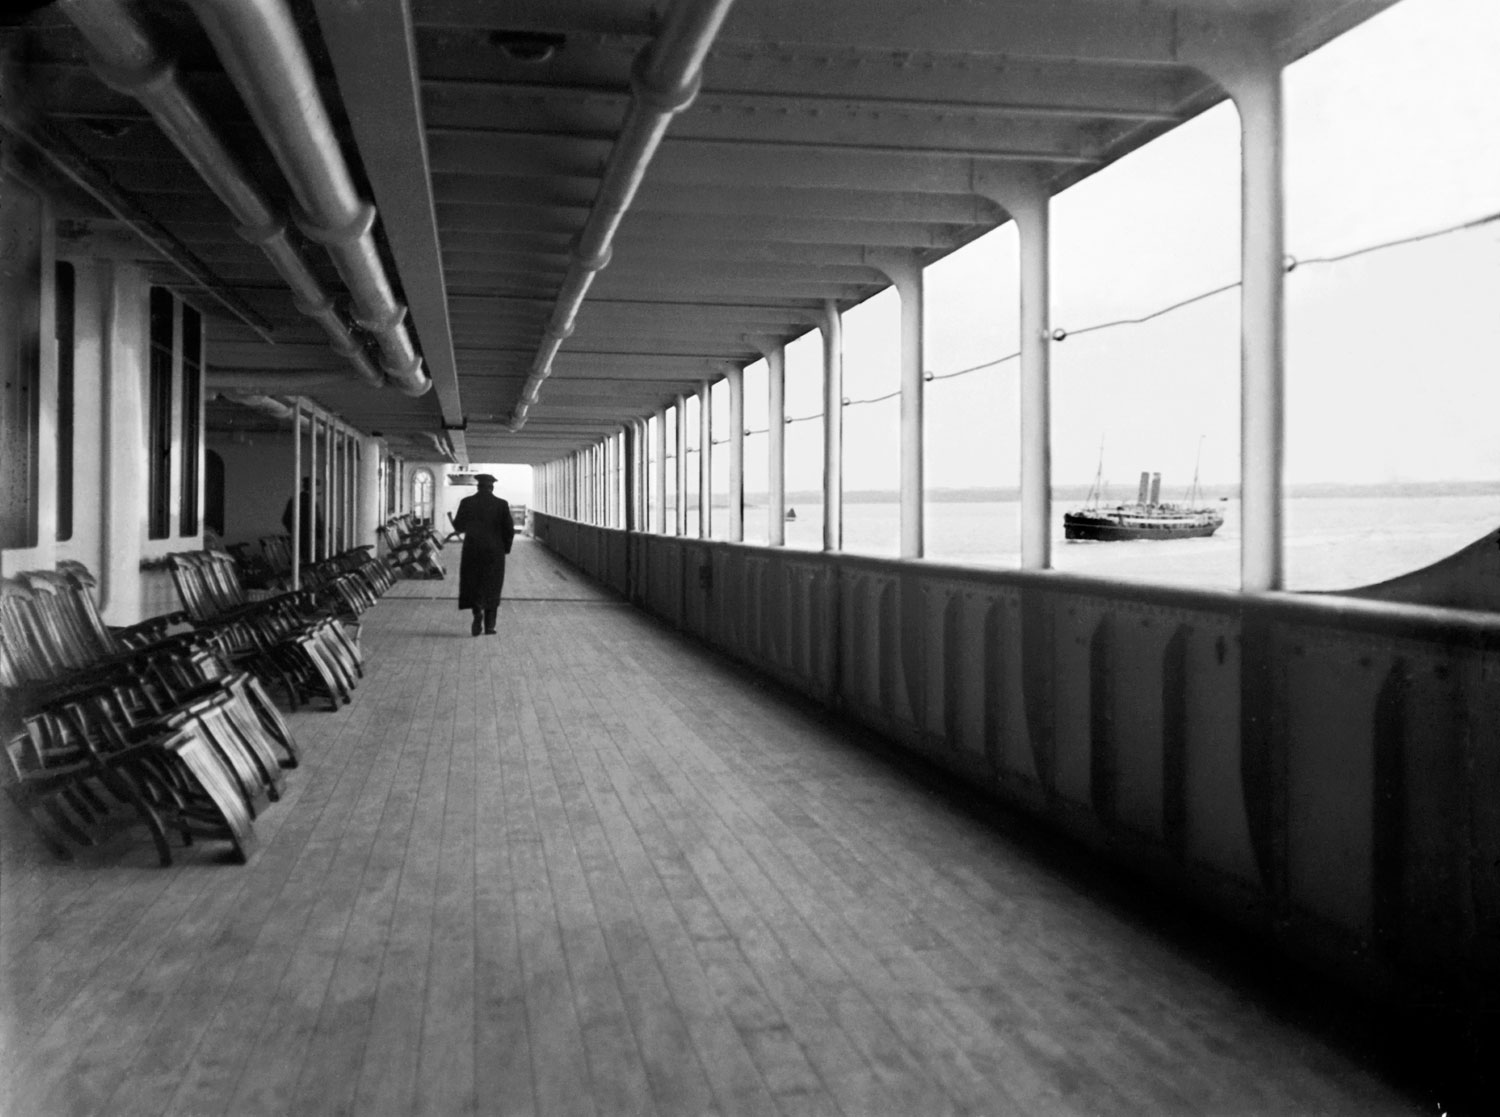 Promenade deck of the Titanic, after leaving Southampton and passing the Portuguese RMSP Tagus, 1912.